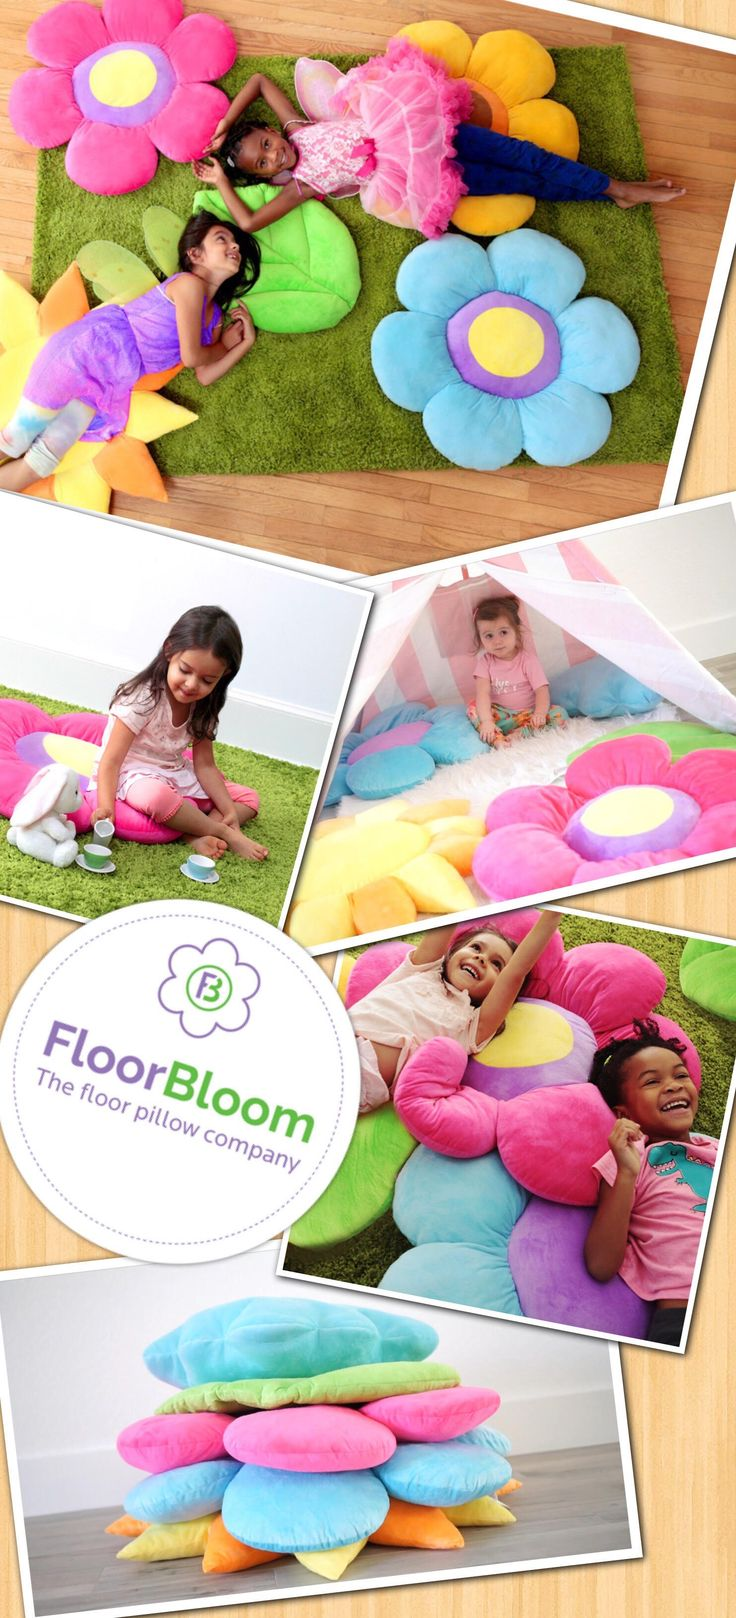 Floor pillows by Floor Bloom are designed for kids but with moms in mind! Kids love the fun, realistic shapes, super-soft fabric and bright colors. Moms love that these floor pillows help protect their rugs and floors. Plus kiddos will leave your nice throw pillows alone when they have pillows of their own!